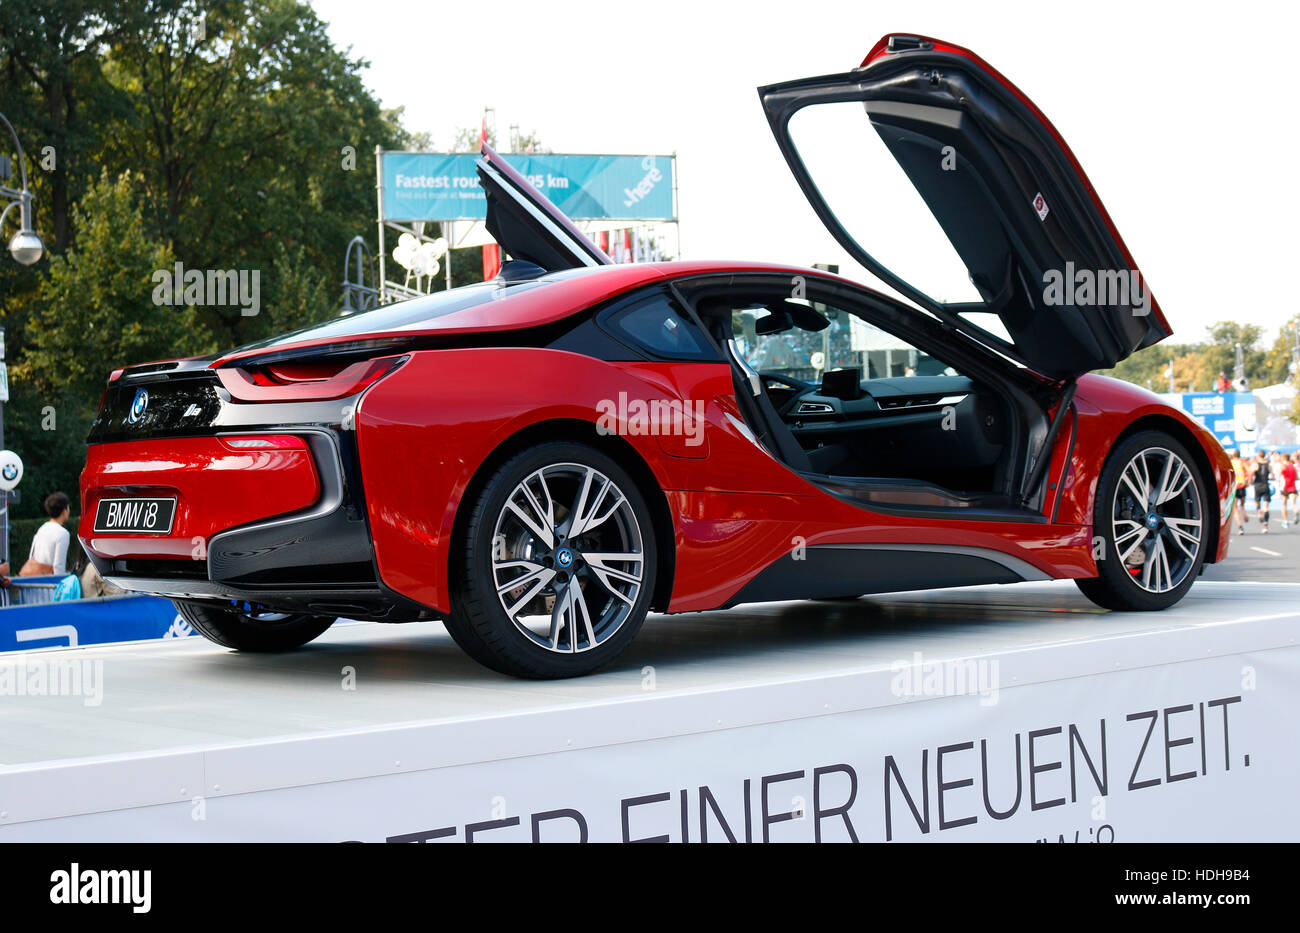 impressionen bmw i8 berlin marathon 25 september 2016 berlin stock photo royalty free. Black Bedroom Furniture Sets. Home Design Ideas